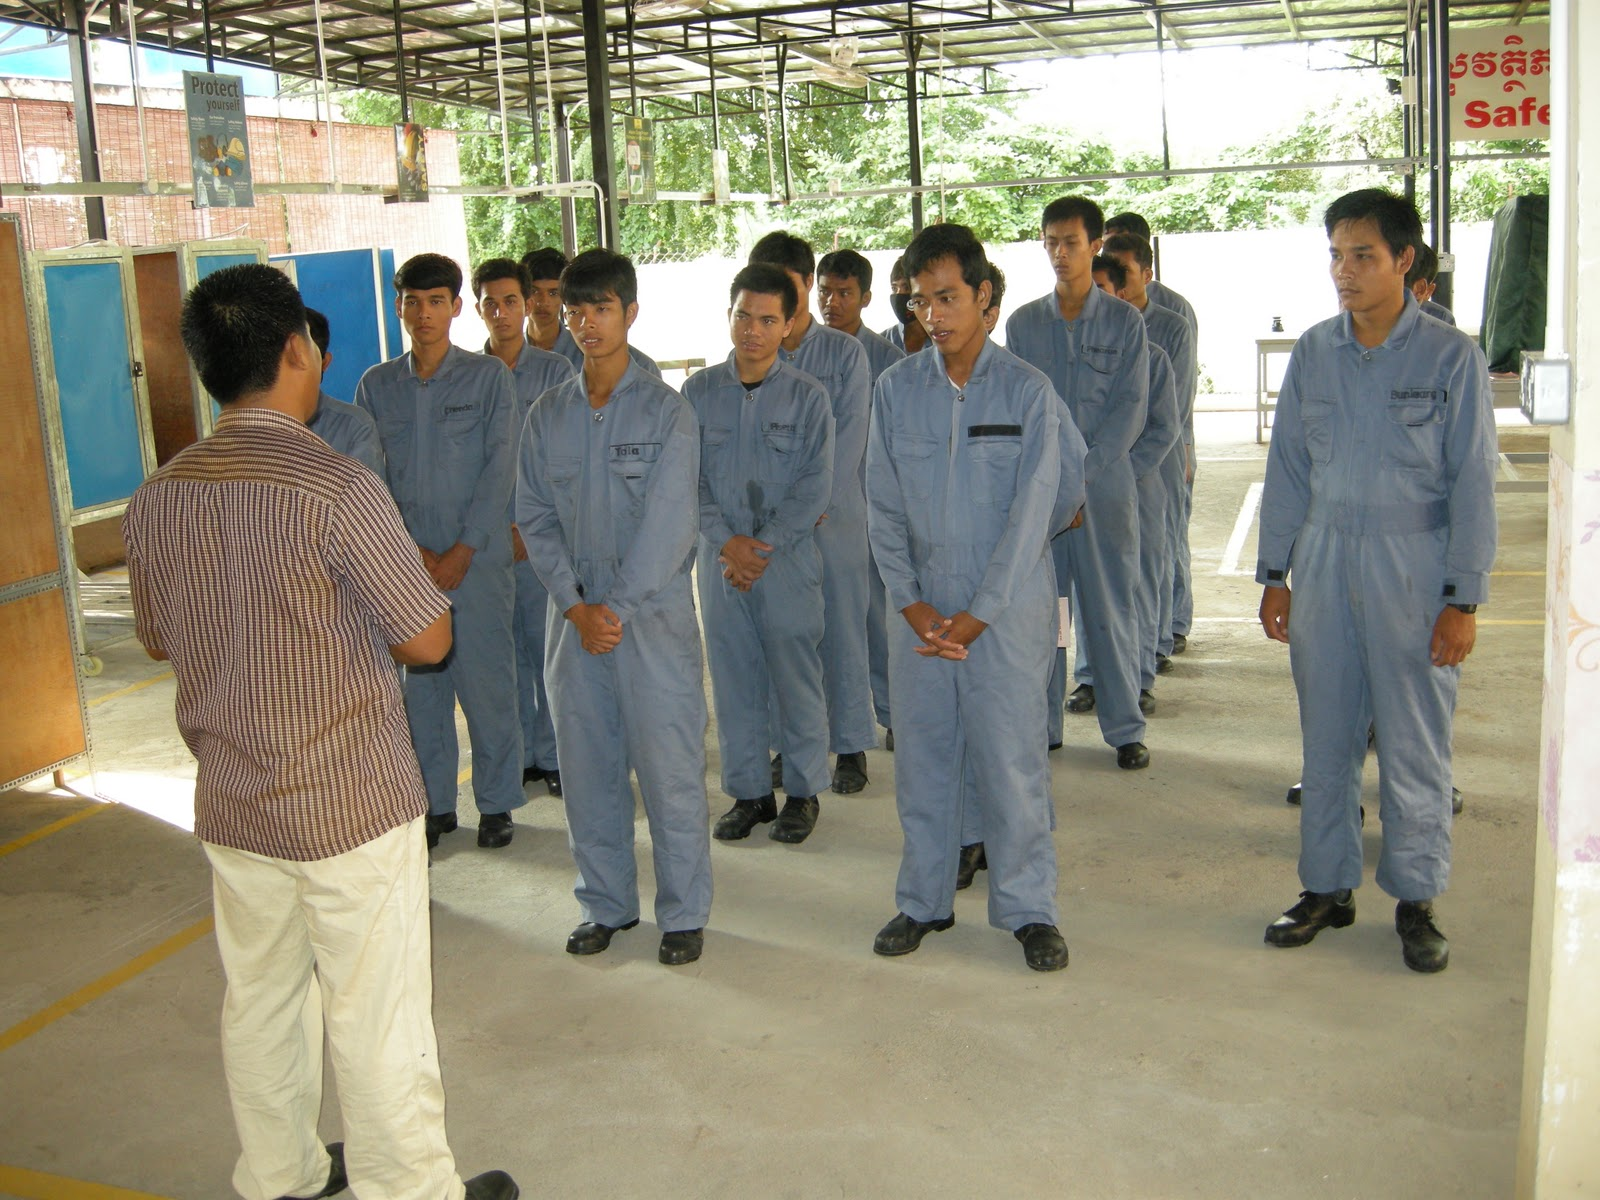 skill and industrial training What is industrial training industrial training refers to work experience done during the program of study that is relevant to professional development prior to graduation.